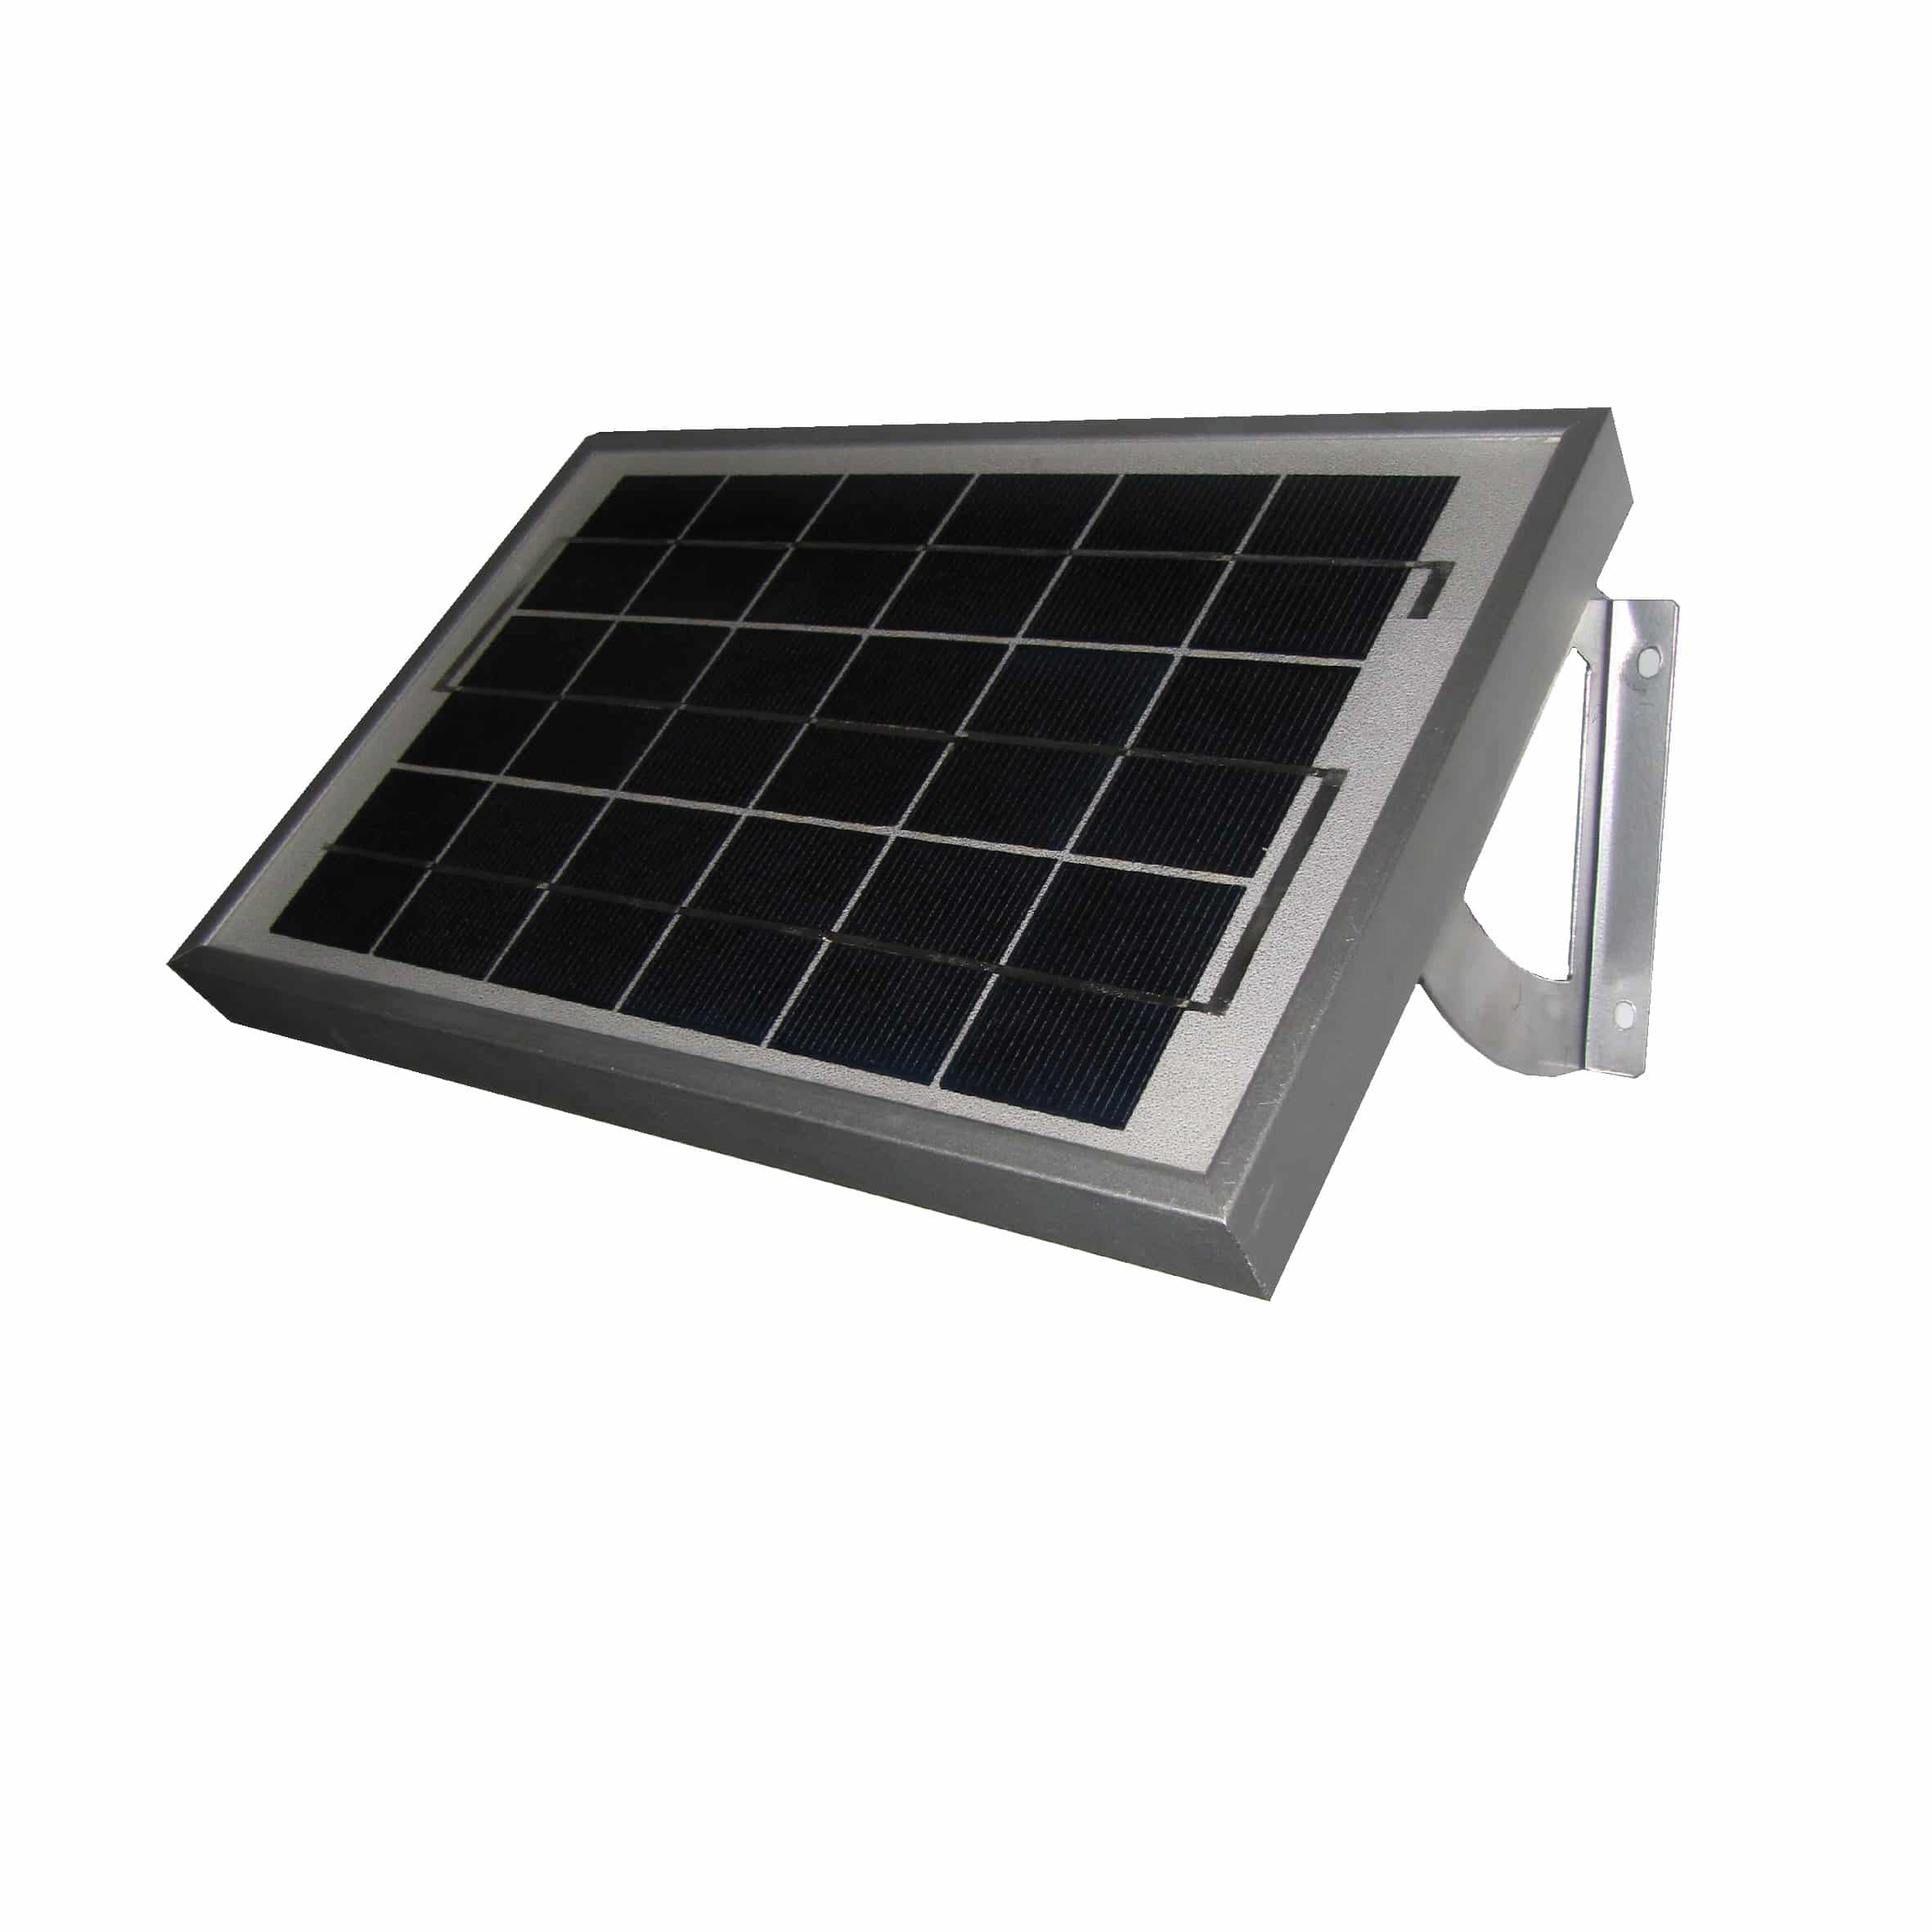 Solar Wall Lighting: Stainless Steel Steller Up/Down - BlackFrog Solar